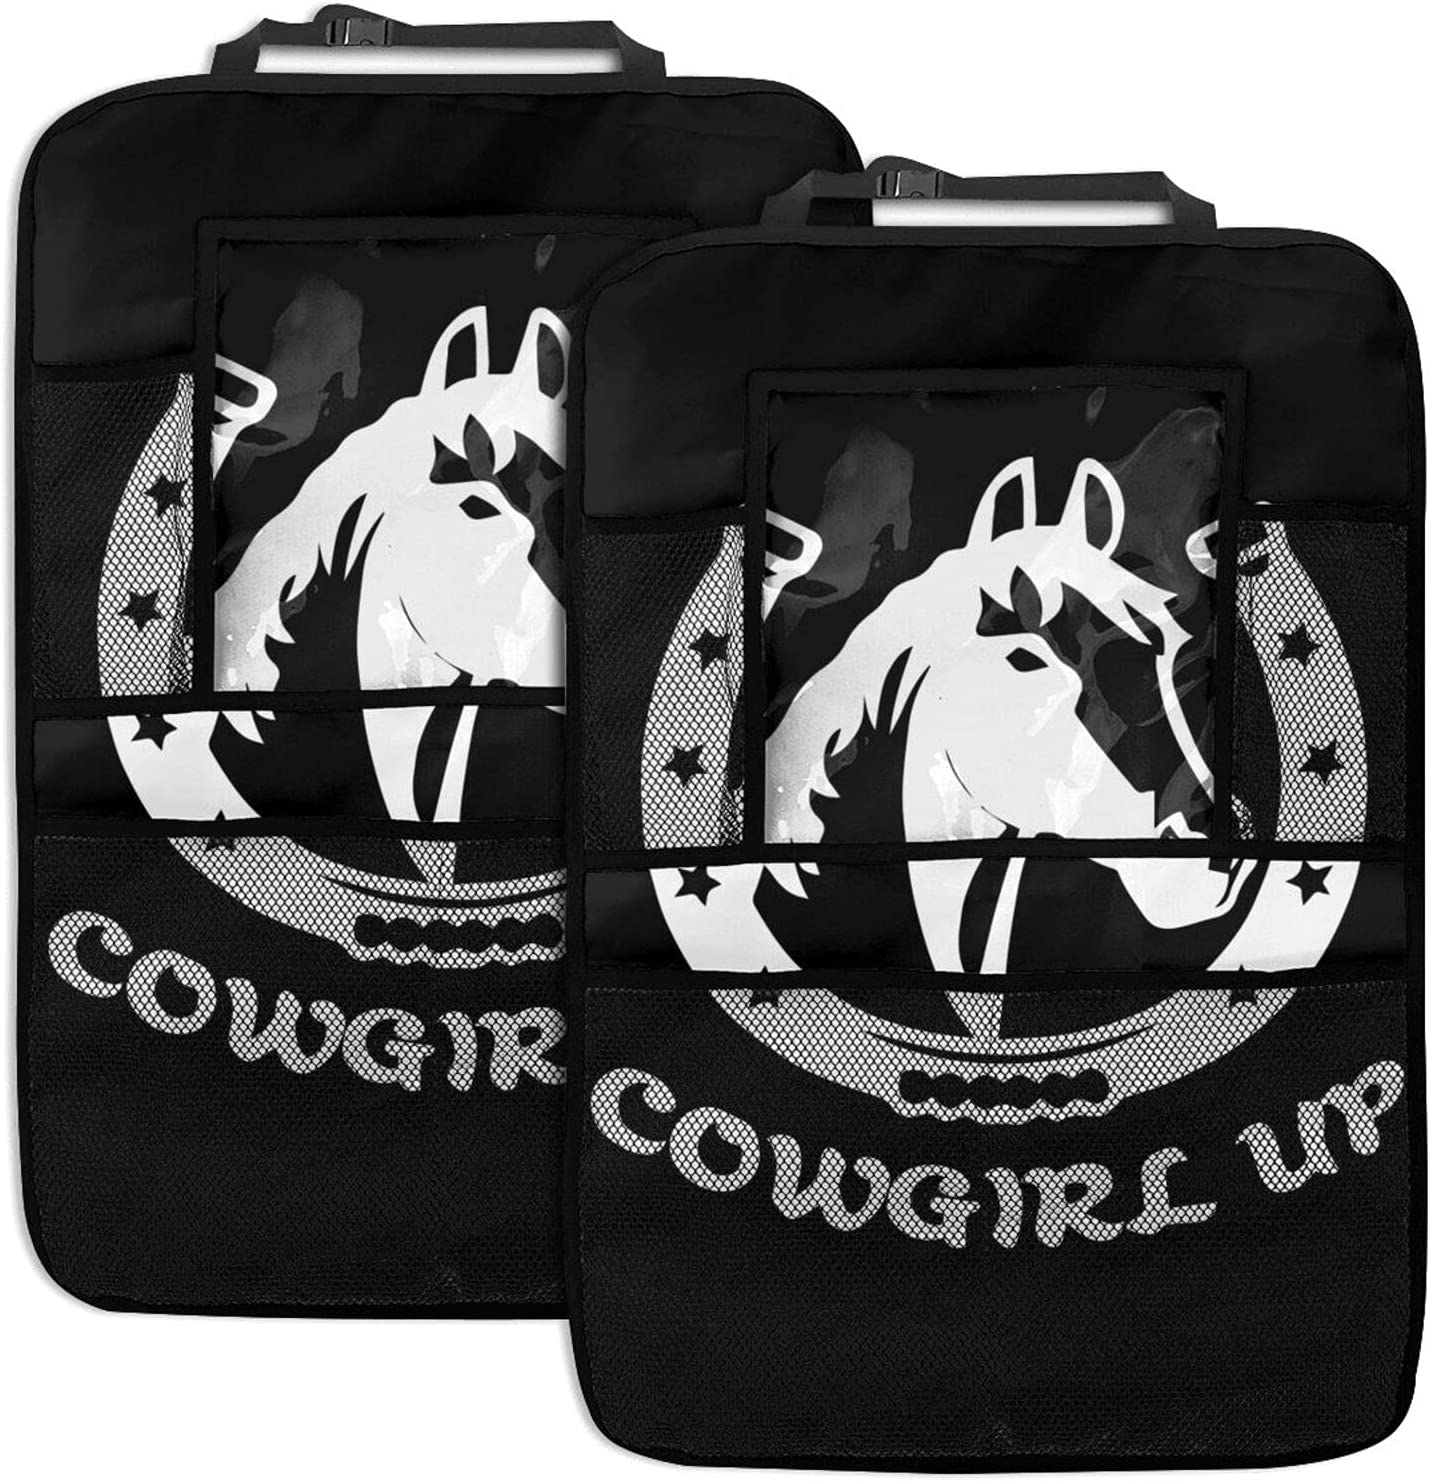 Cowgirl Up Car Backseat Organizer Screen With Tablet Touch Holde Oakland Mall supreme